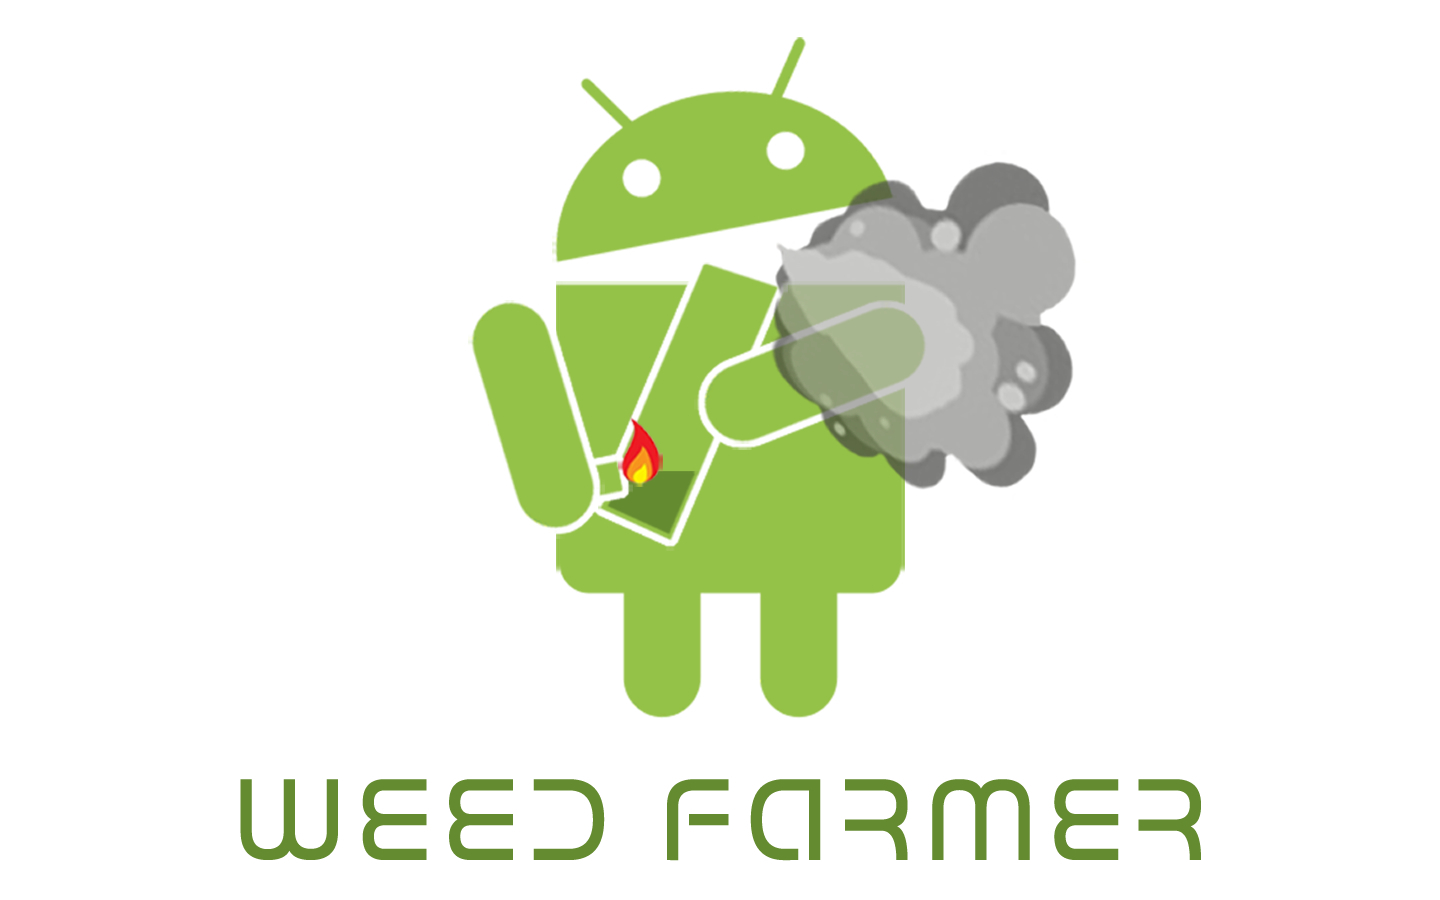 android marijuana bong computer HD Wallpaper